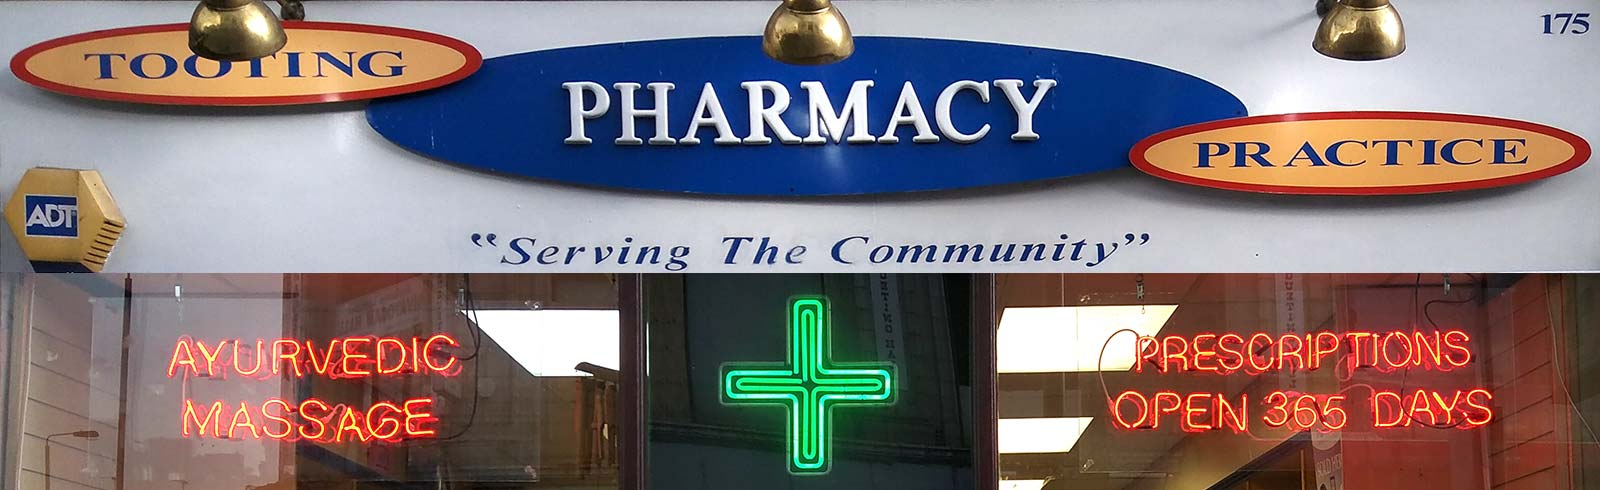 Tooting pharmacy outside